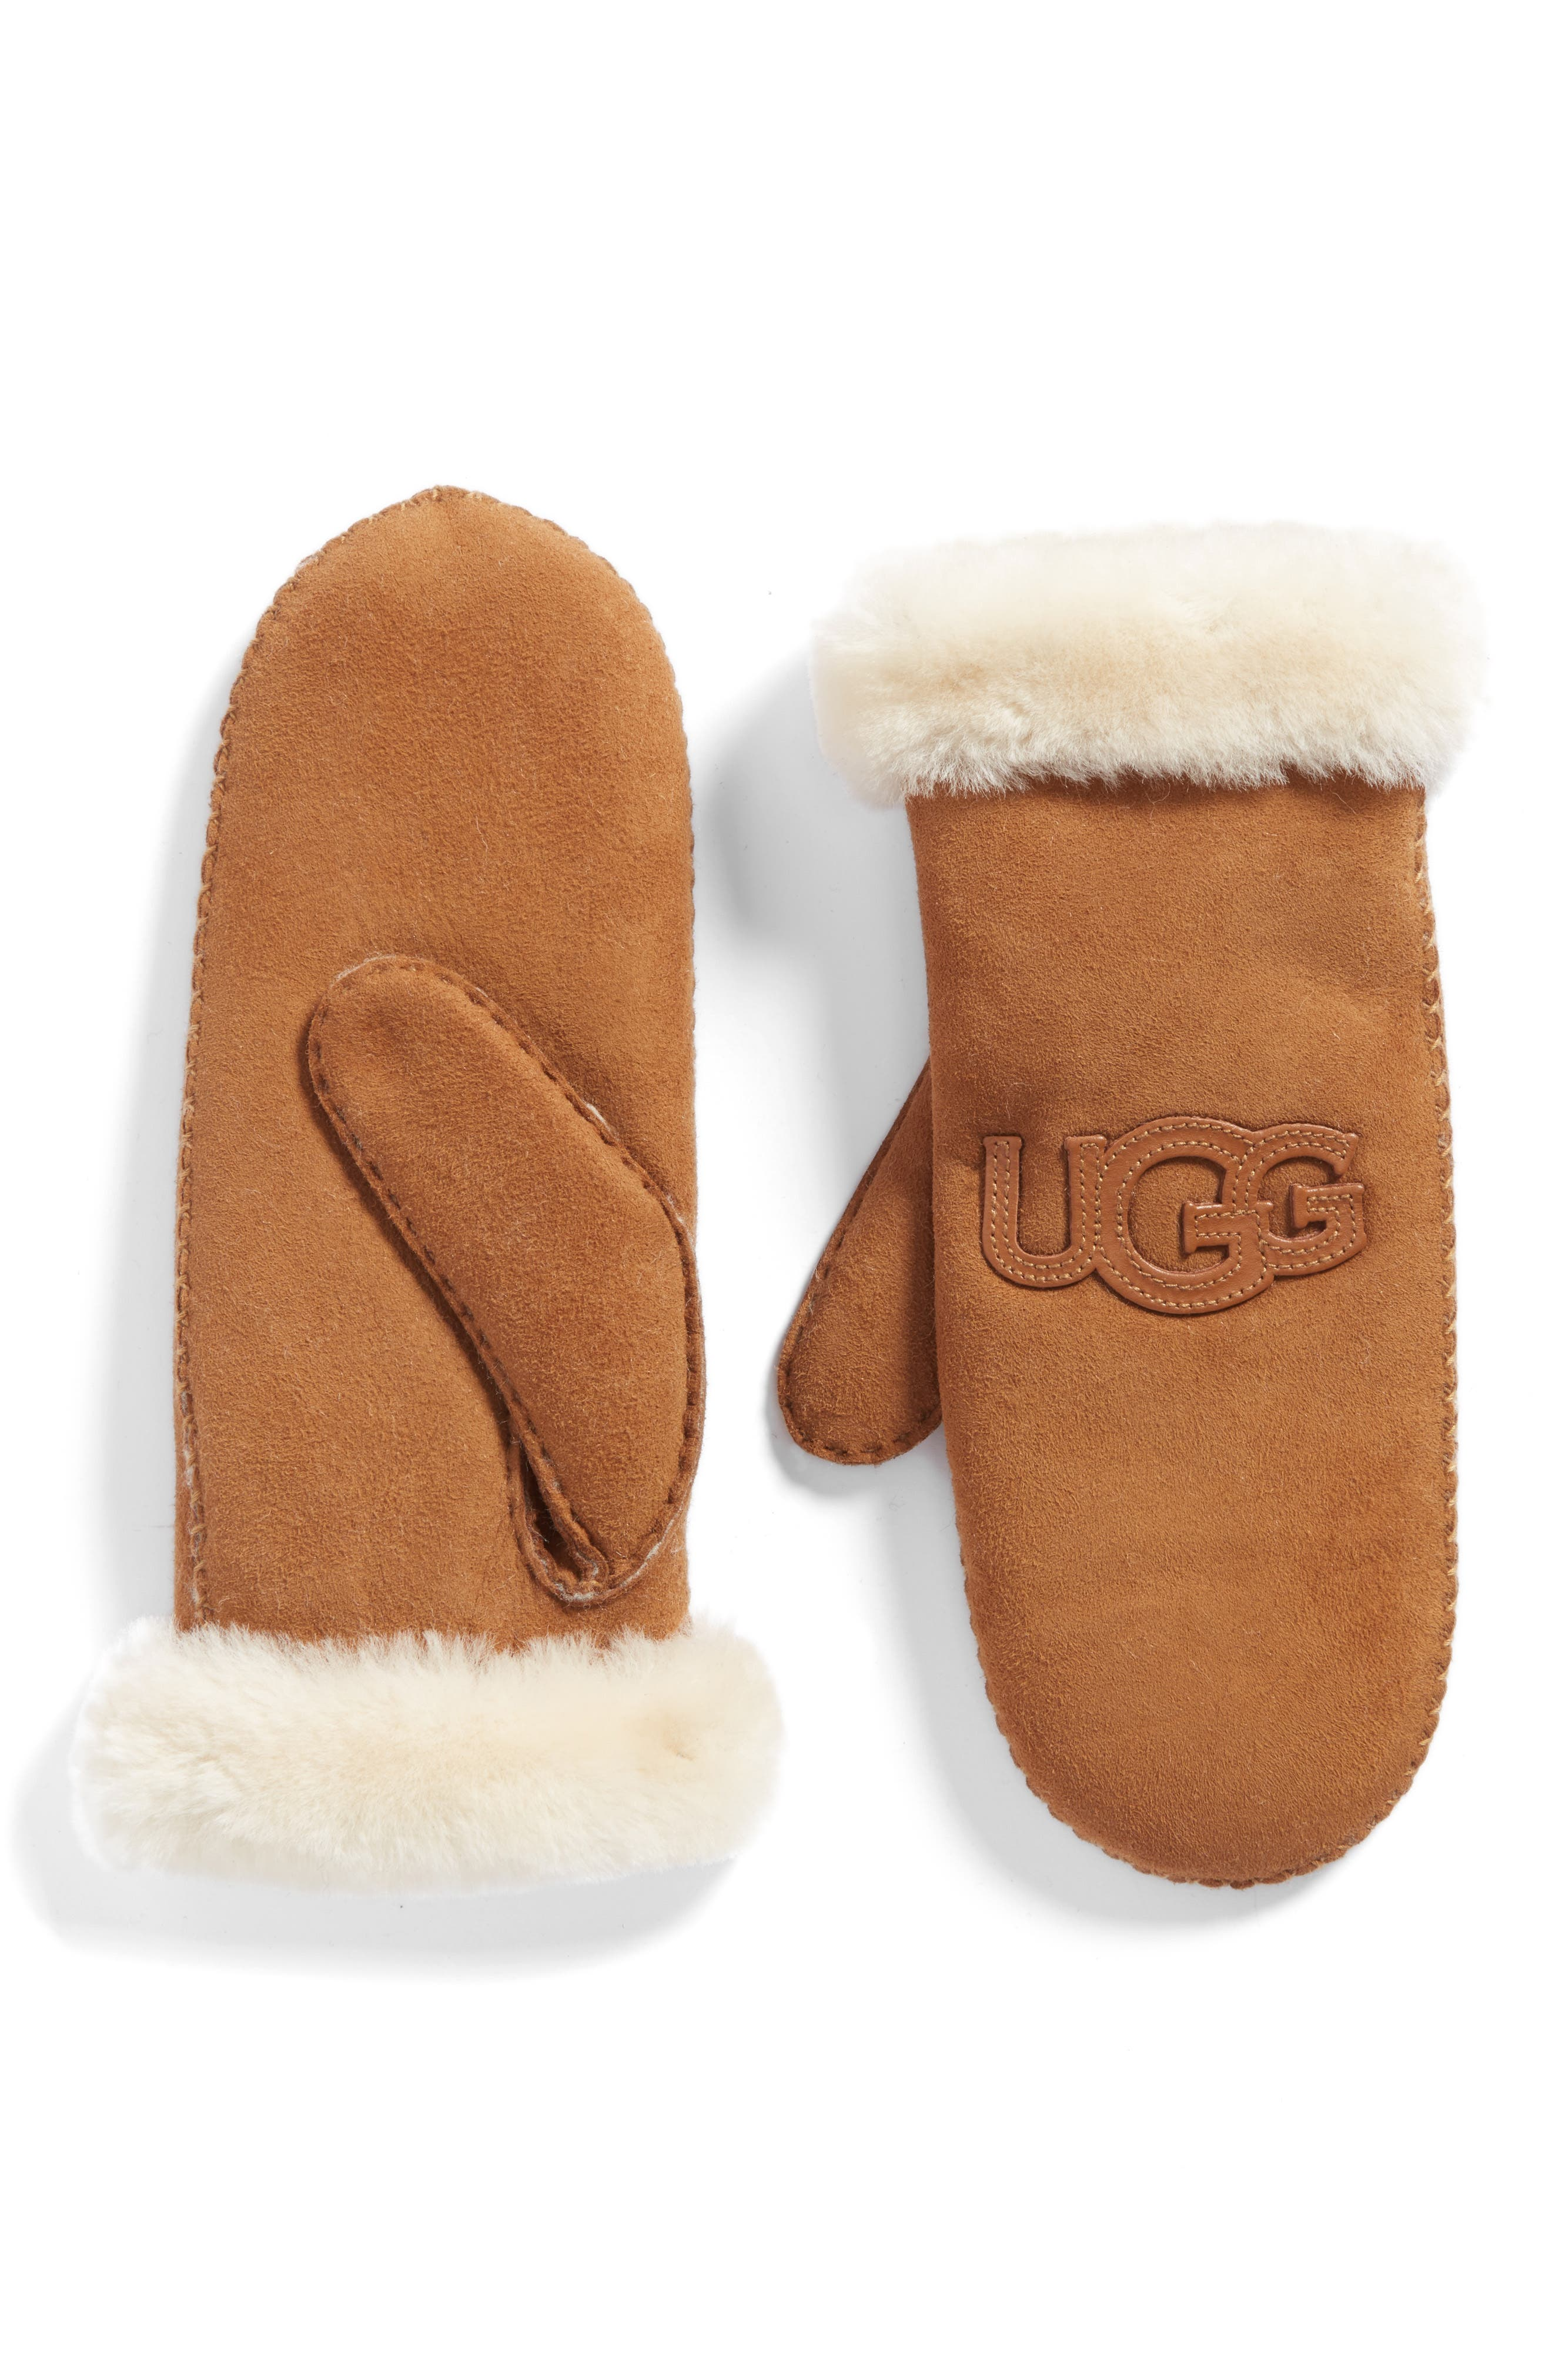 Heritage Logo Genuine Shearling Mittens,                             Main thumbnail 1, color,                             Chestnut